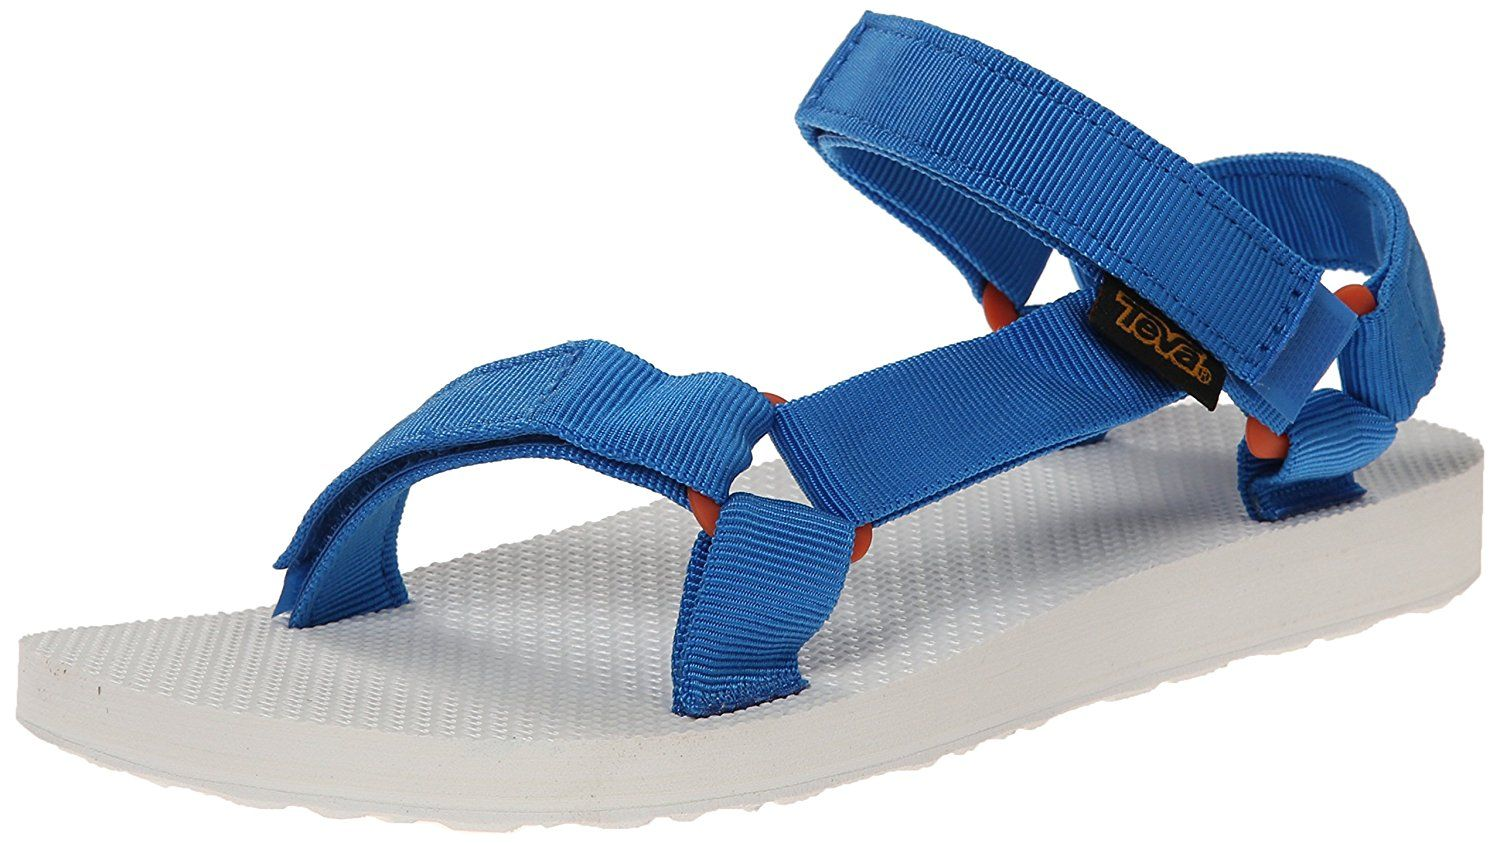 Teva Lumen Women Women's with light 4085 blue, tama?o de zapato:EUR 41